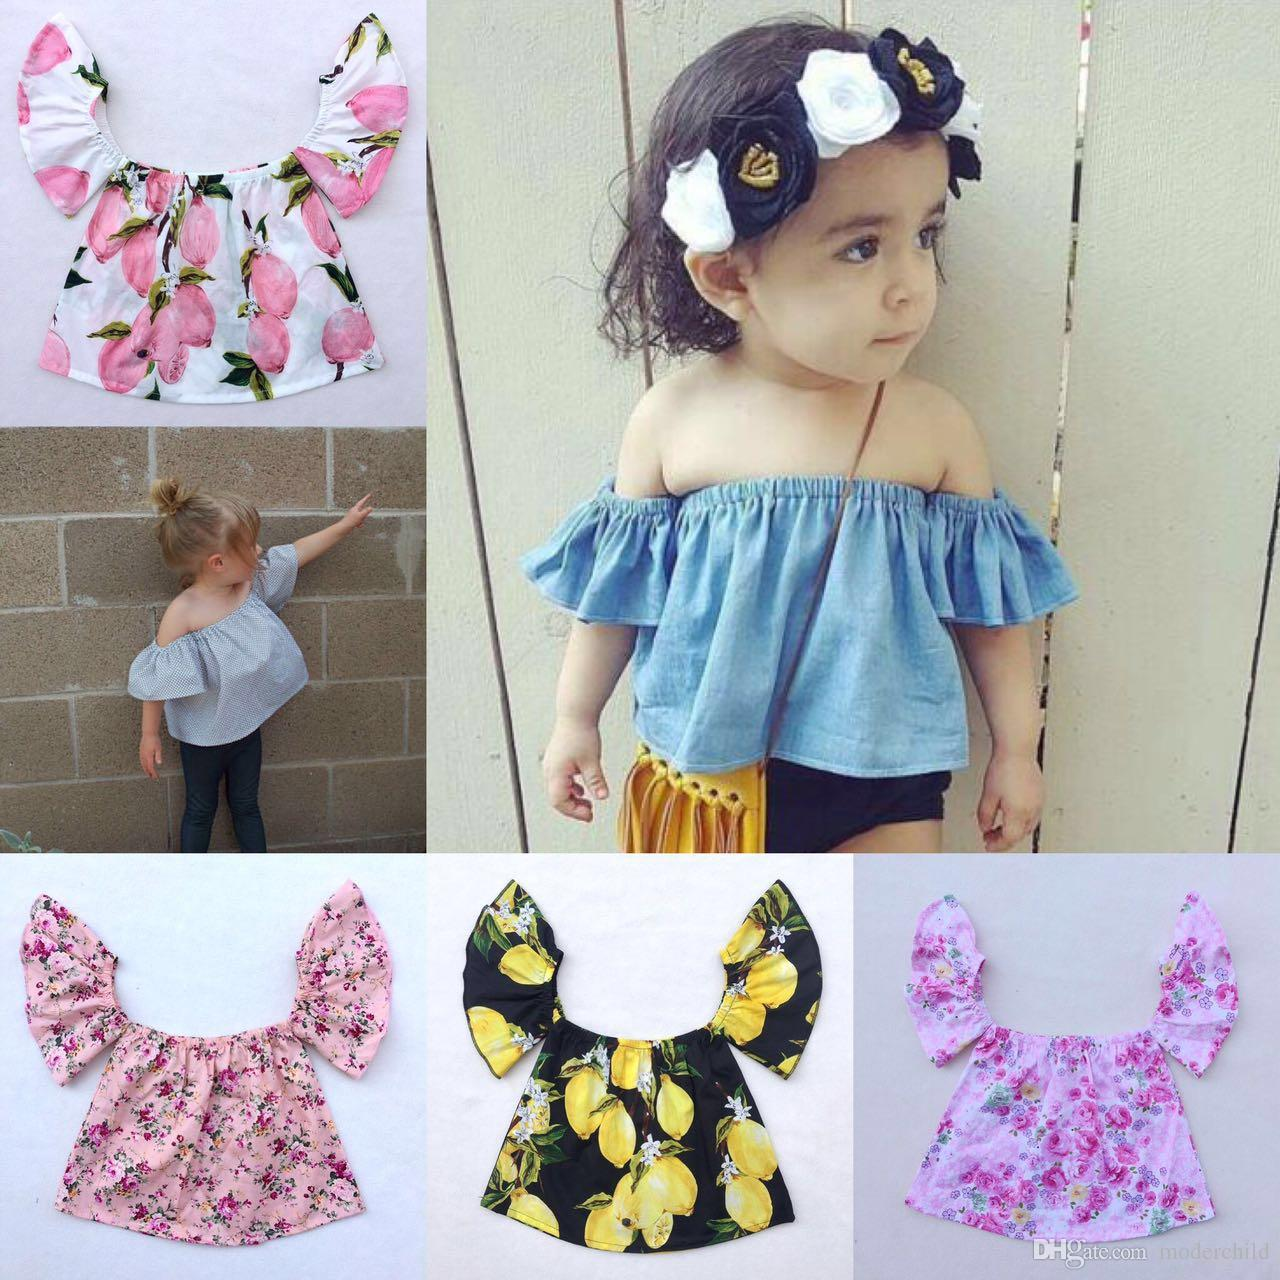 a0573493ec4999 2019 Girl Off Shoulder Tops Summer Baby Floral Sunflower Shirts + Flower  Headbands Girls Boutique Clothing Sets Little Girl Clothes Tank Top From  Moderchild ...